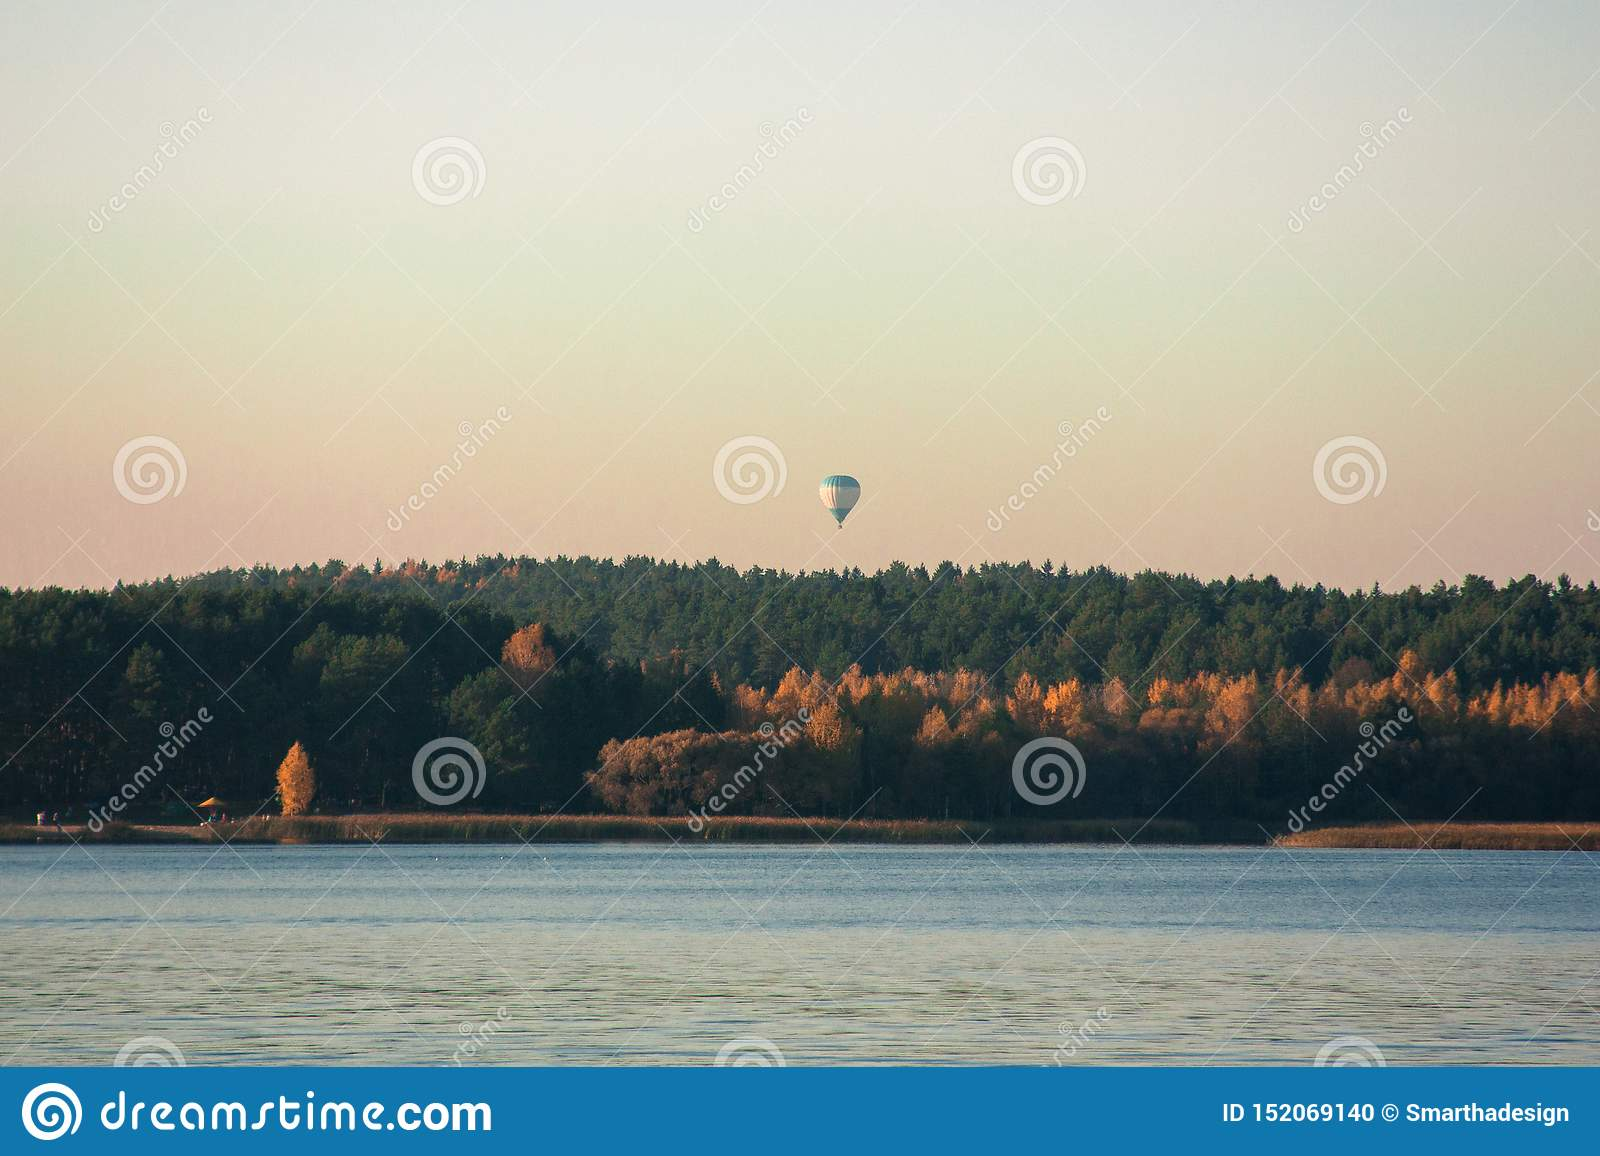 Beautiful Lake Landscape Balloon And Sunset Blue Waves Boat And Horizon Line On Water Beautiful Background Stock Photo Image Of Nature Natural 152069140